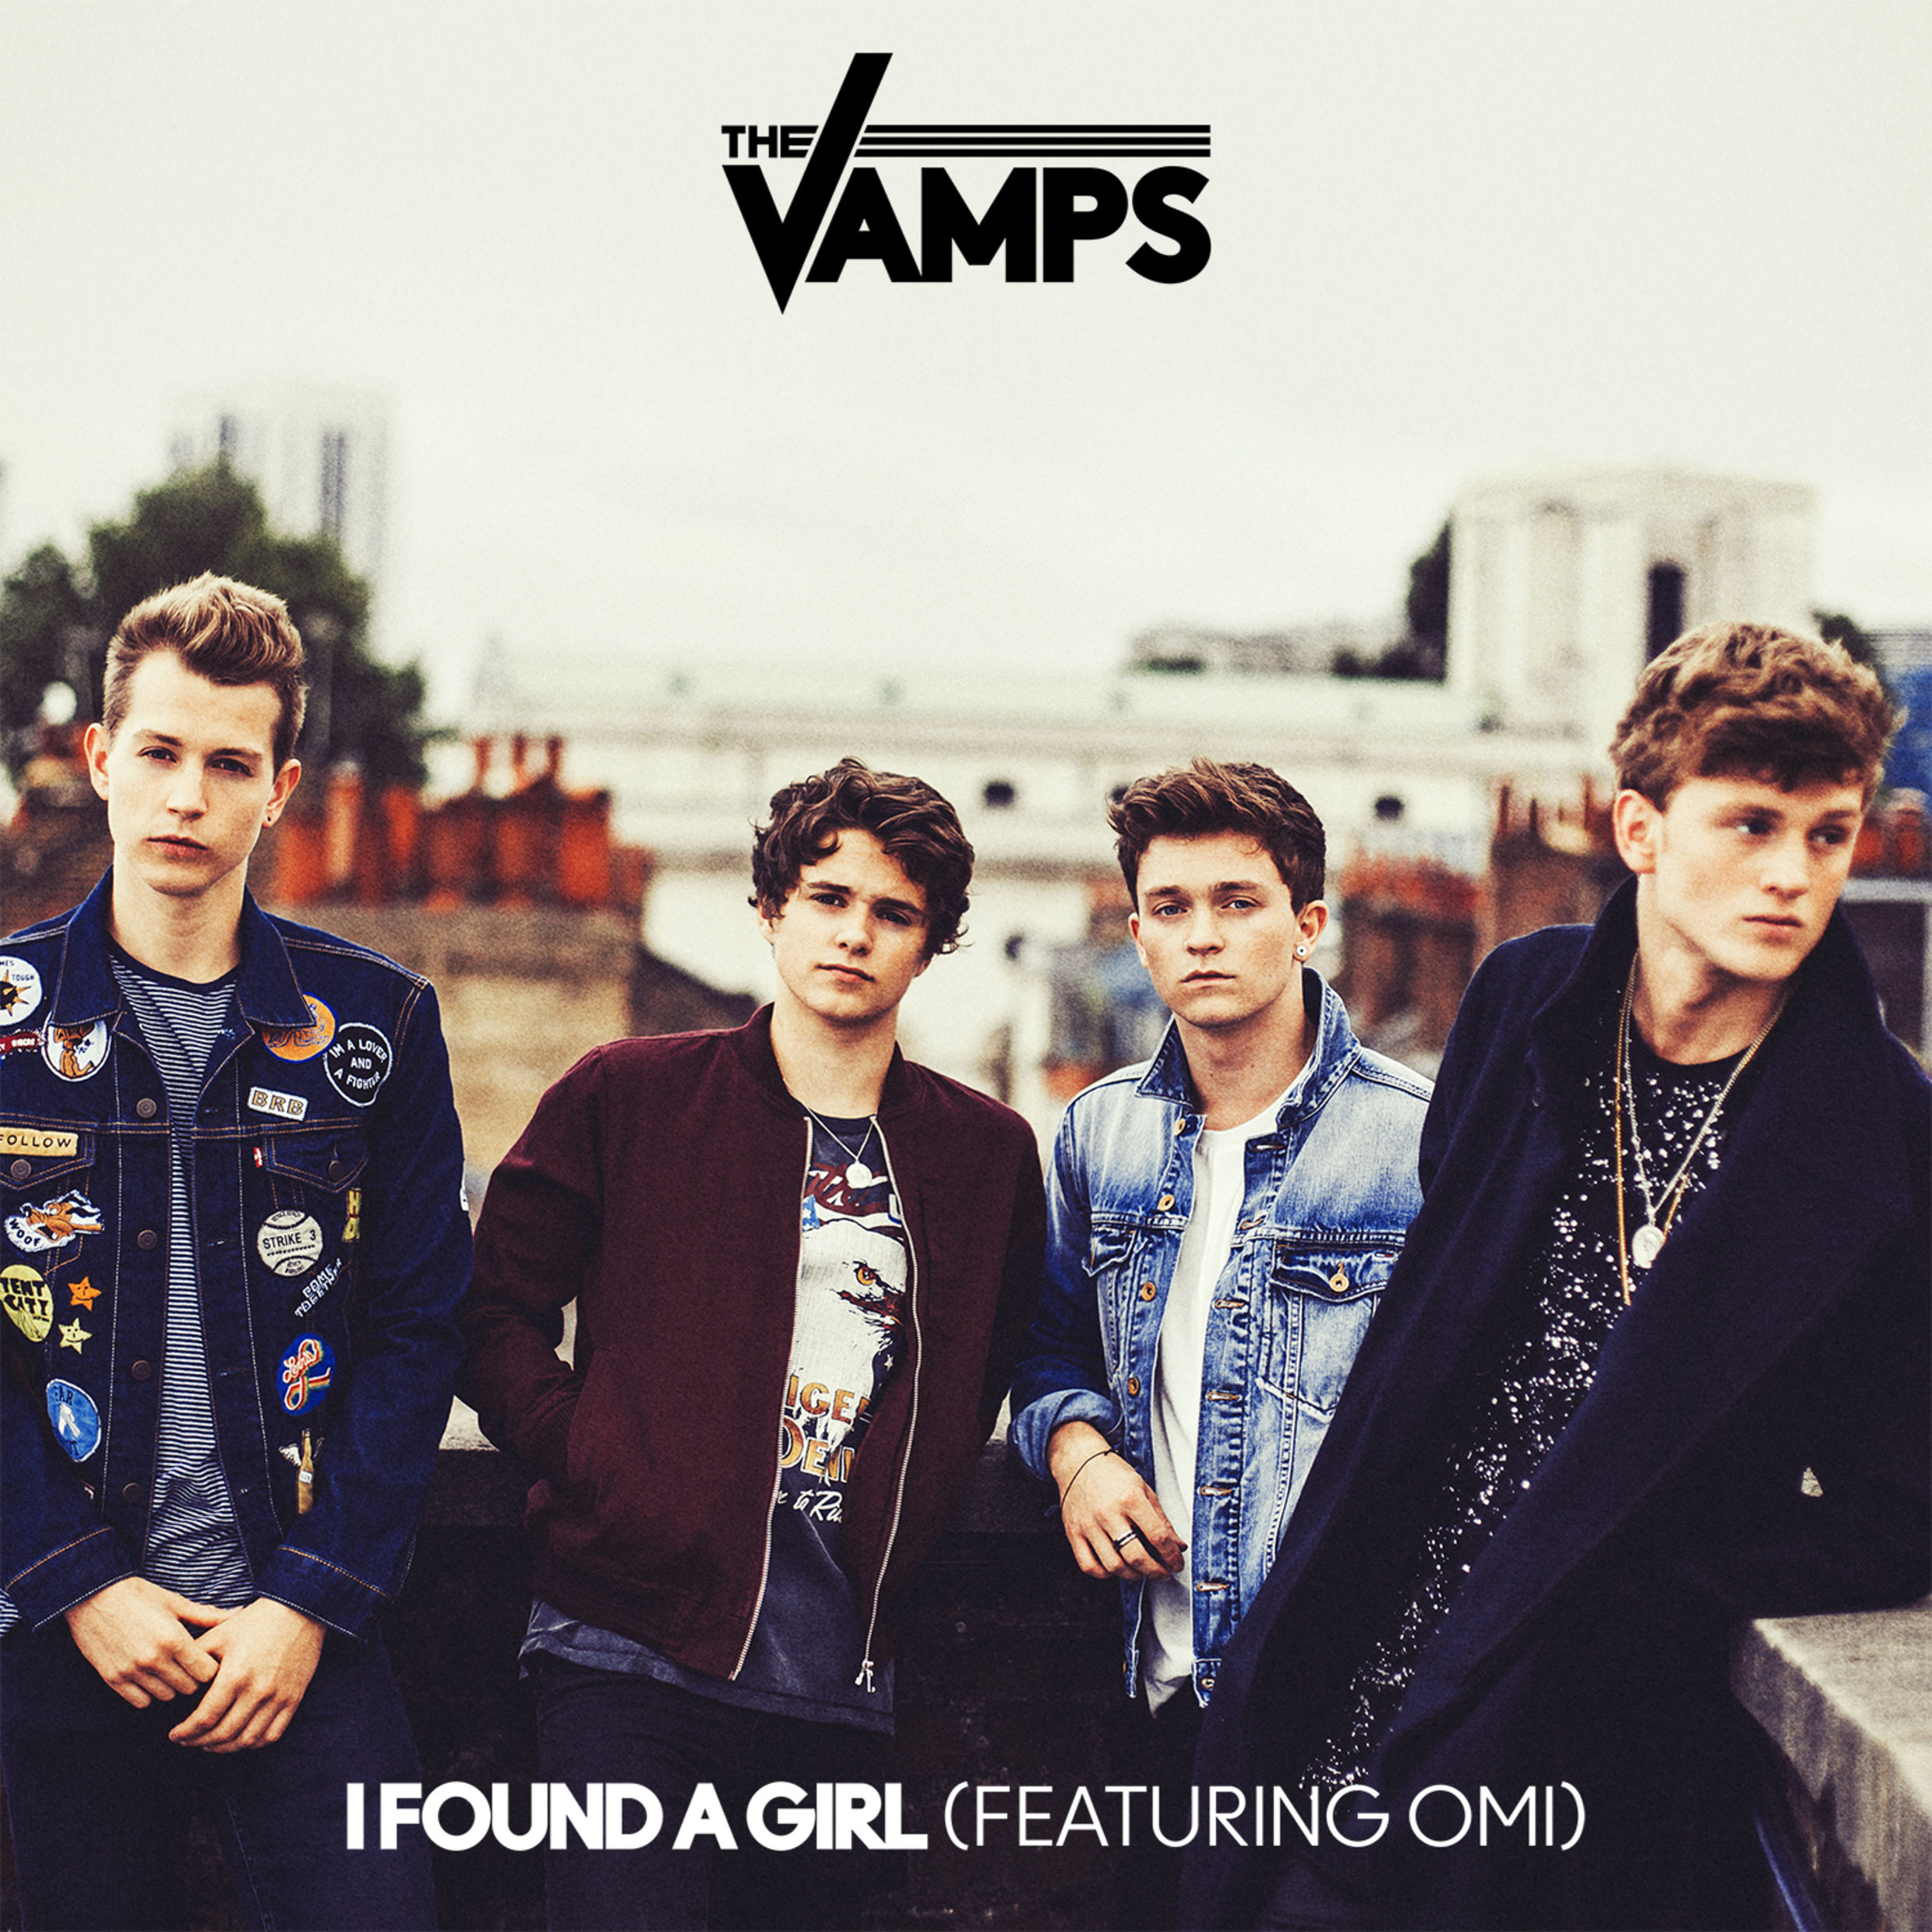 The-Vamps-I-Found-a-Girl-2016-2480x2480